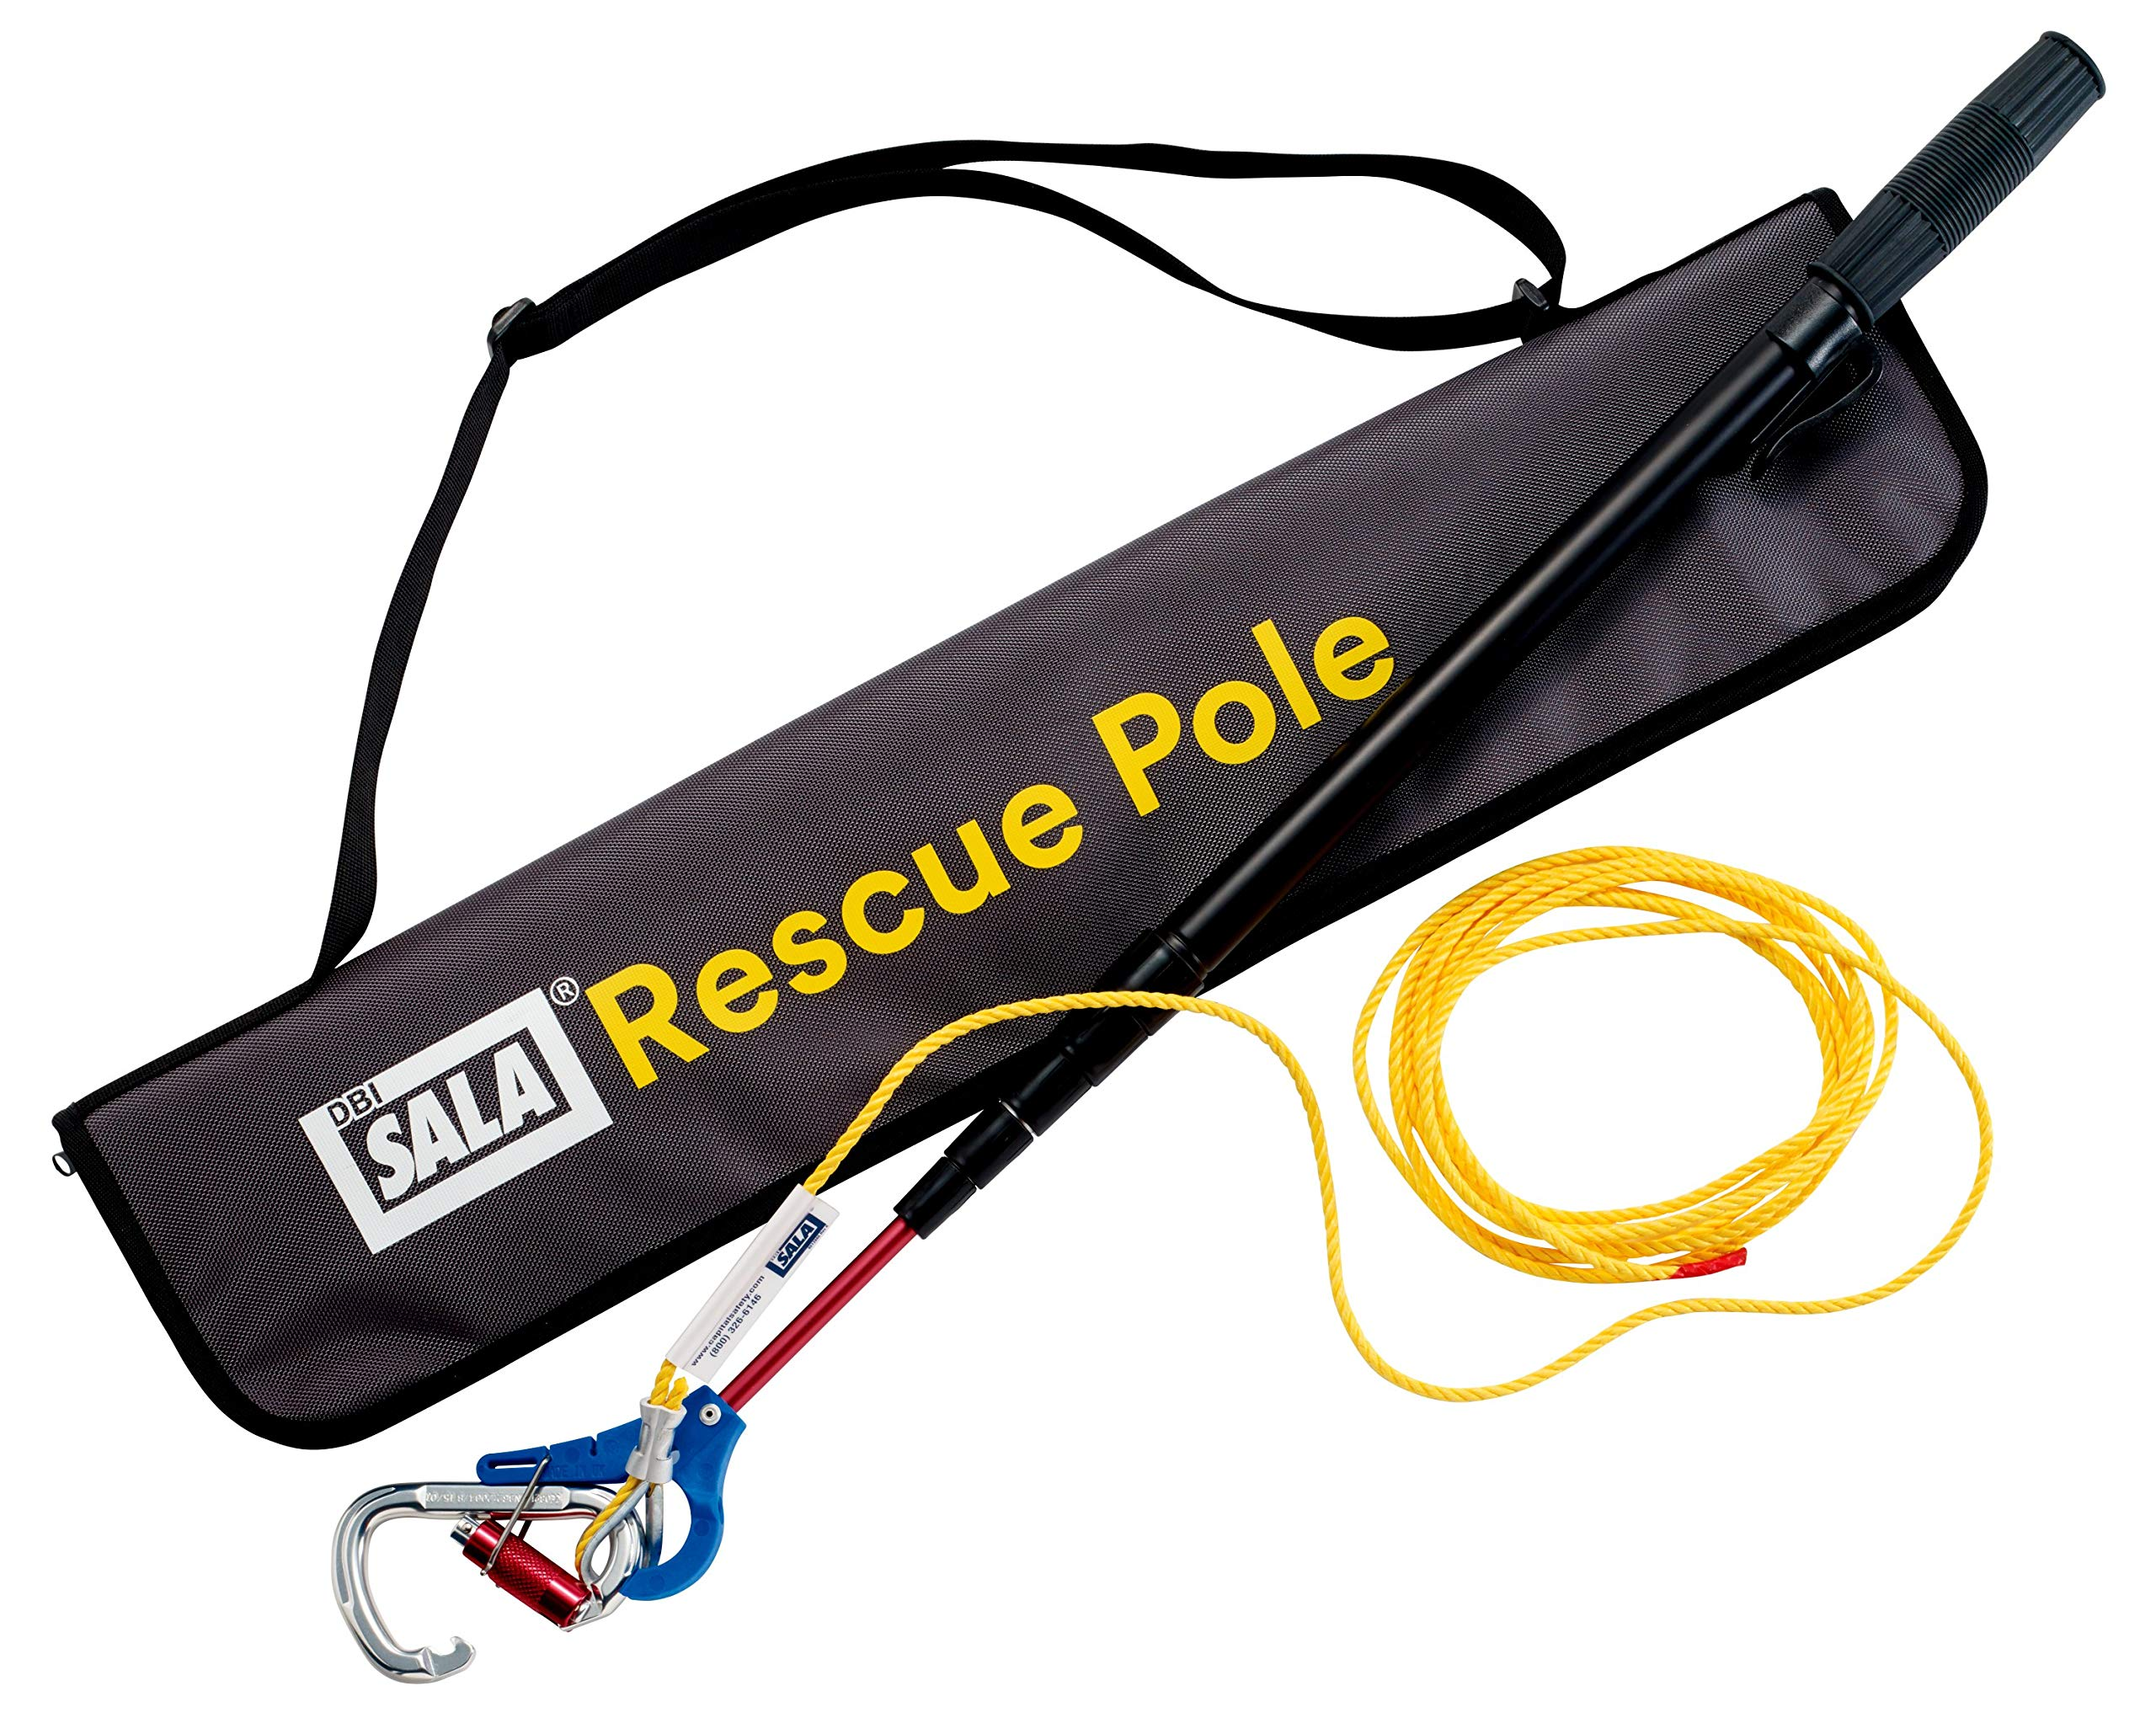 3M DBI-Sala Rescue Pole 8900299, Black, 1 Ea by 3M Personal Protective Equipment